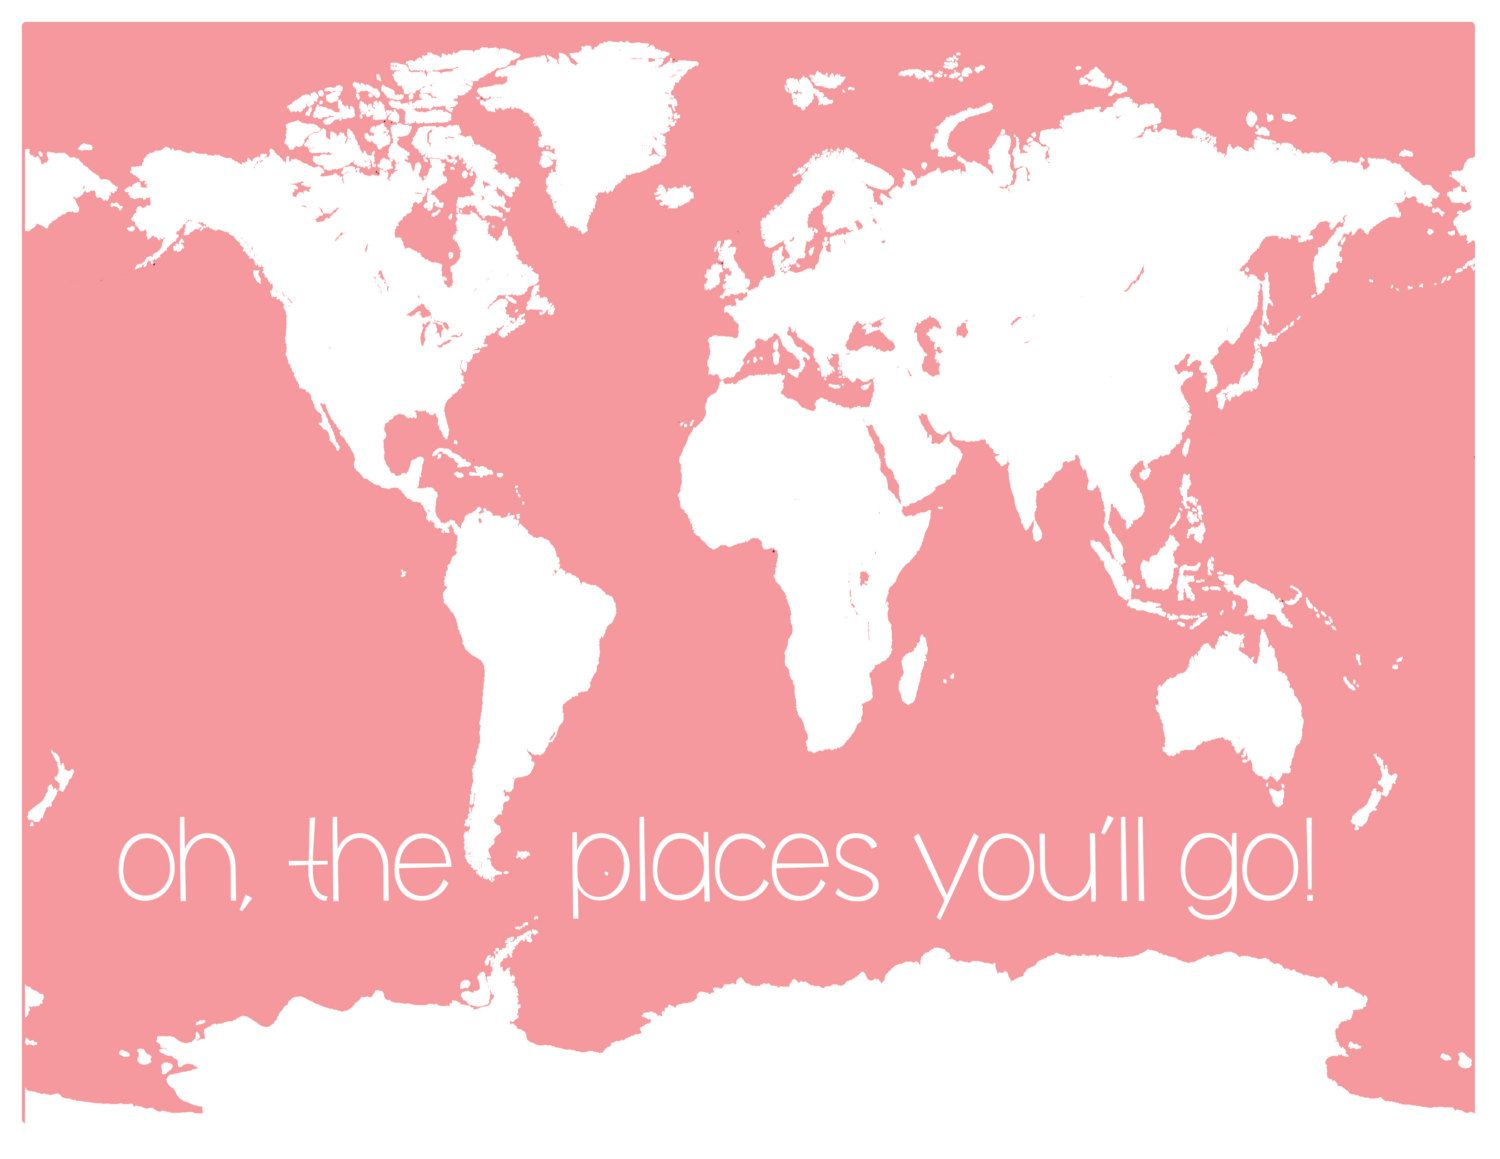 Oh the places youll go pink world map dr seuss quote family pink world map dr seuss quote family gumiabroncs Image collections